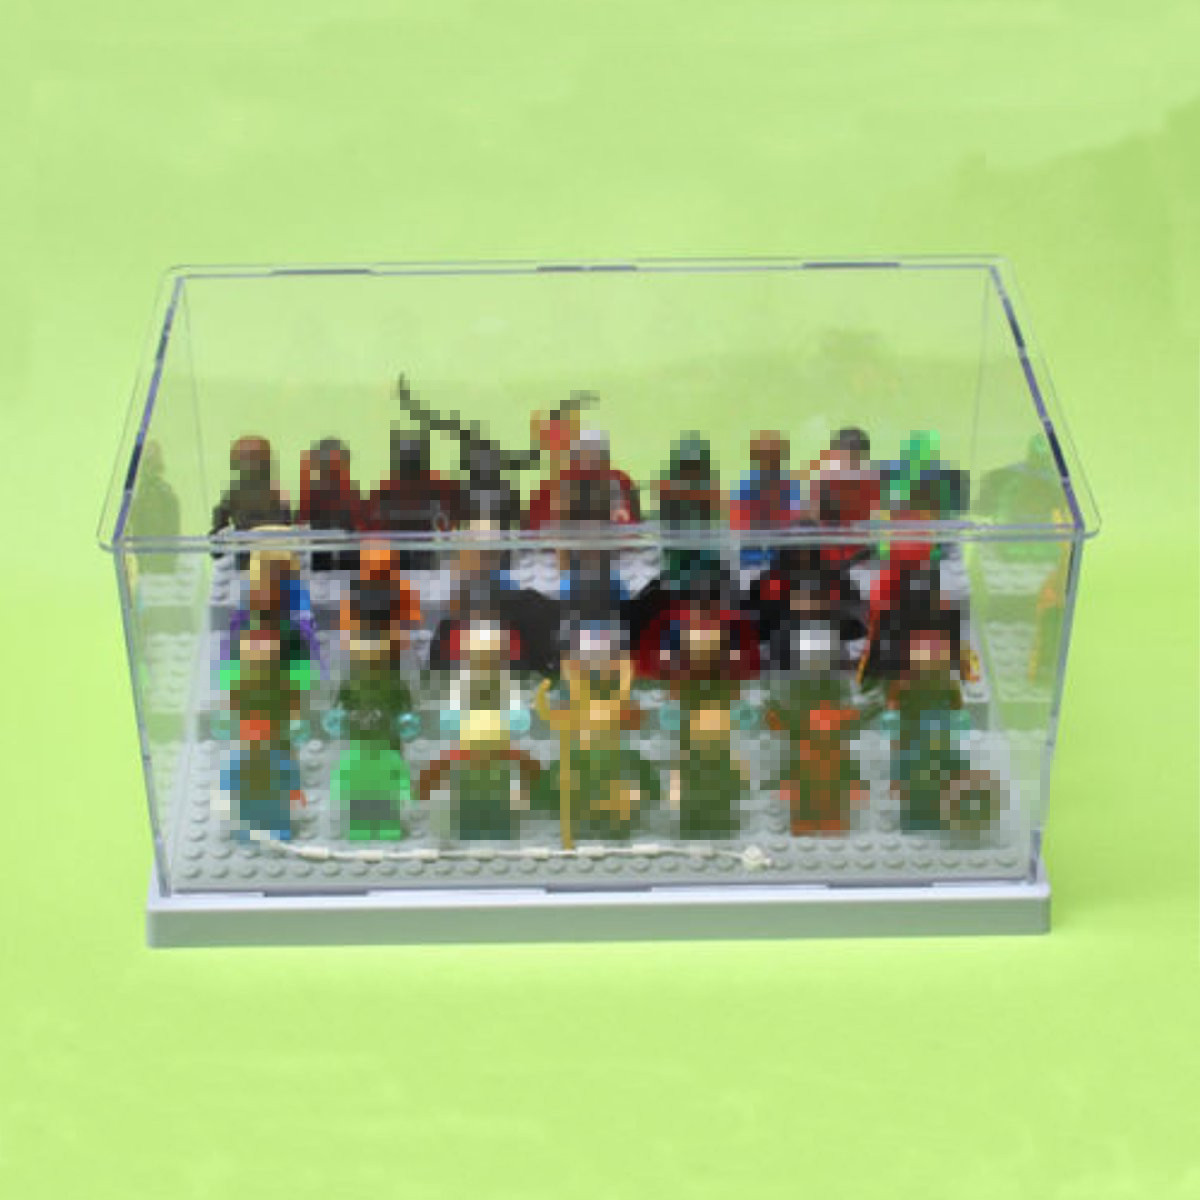 New 3 Steps Display Case Box Dustproof ShowCase Gray Base For LEGO Blocks  Acrylic Plastic Display Box Case 25.5X15.5X13.8cm-in Action   Toy Figures  from ... de6b19d30